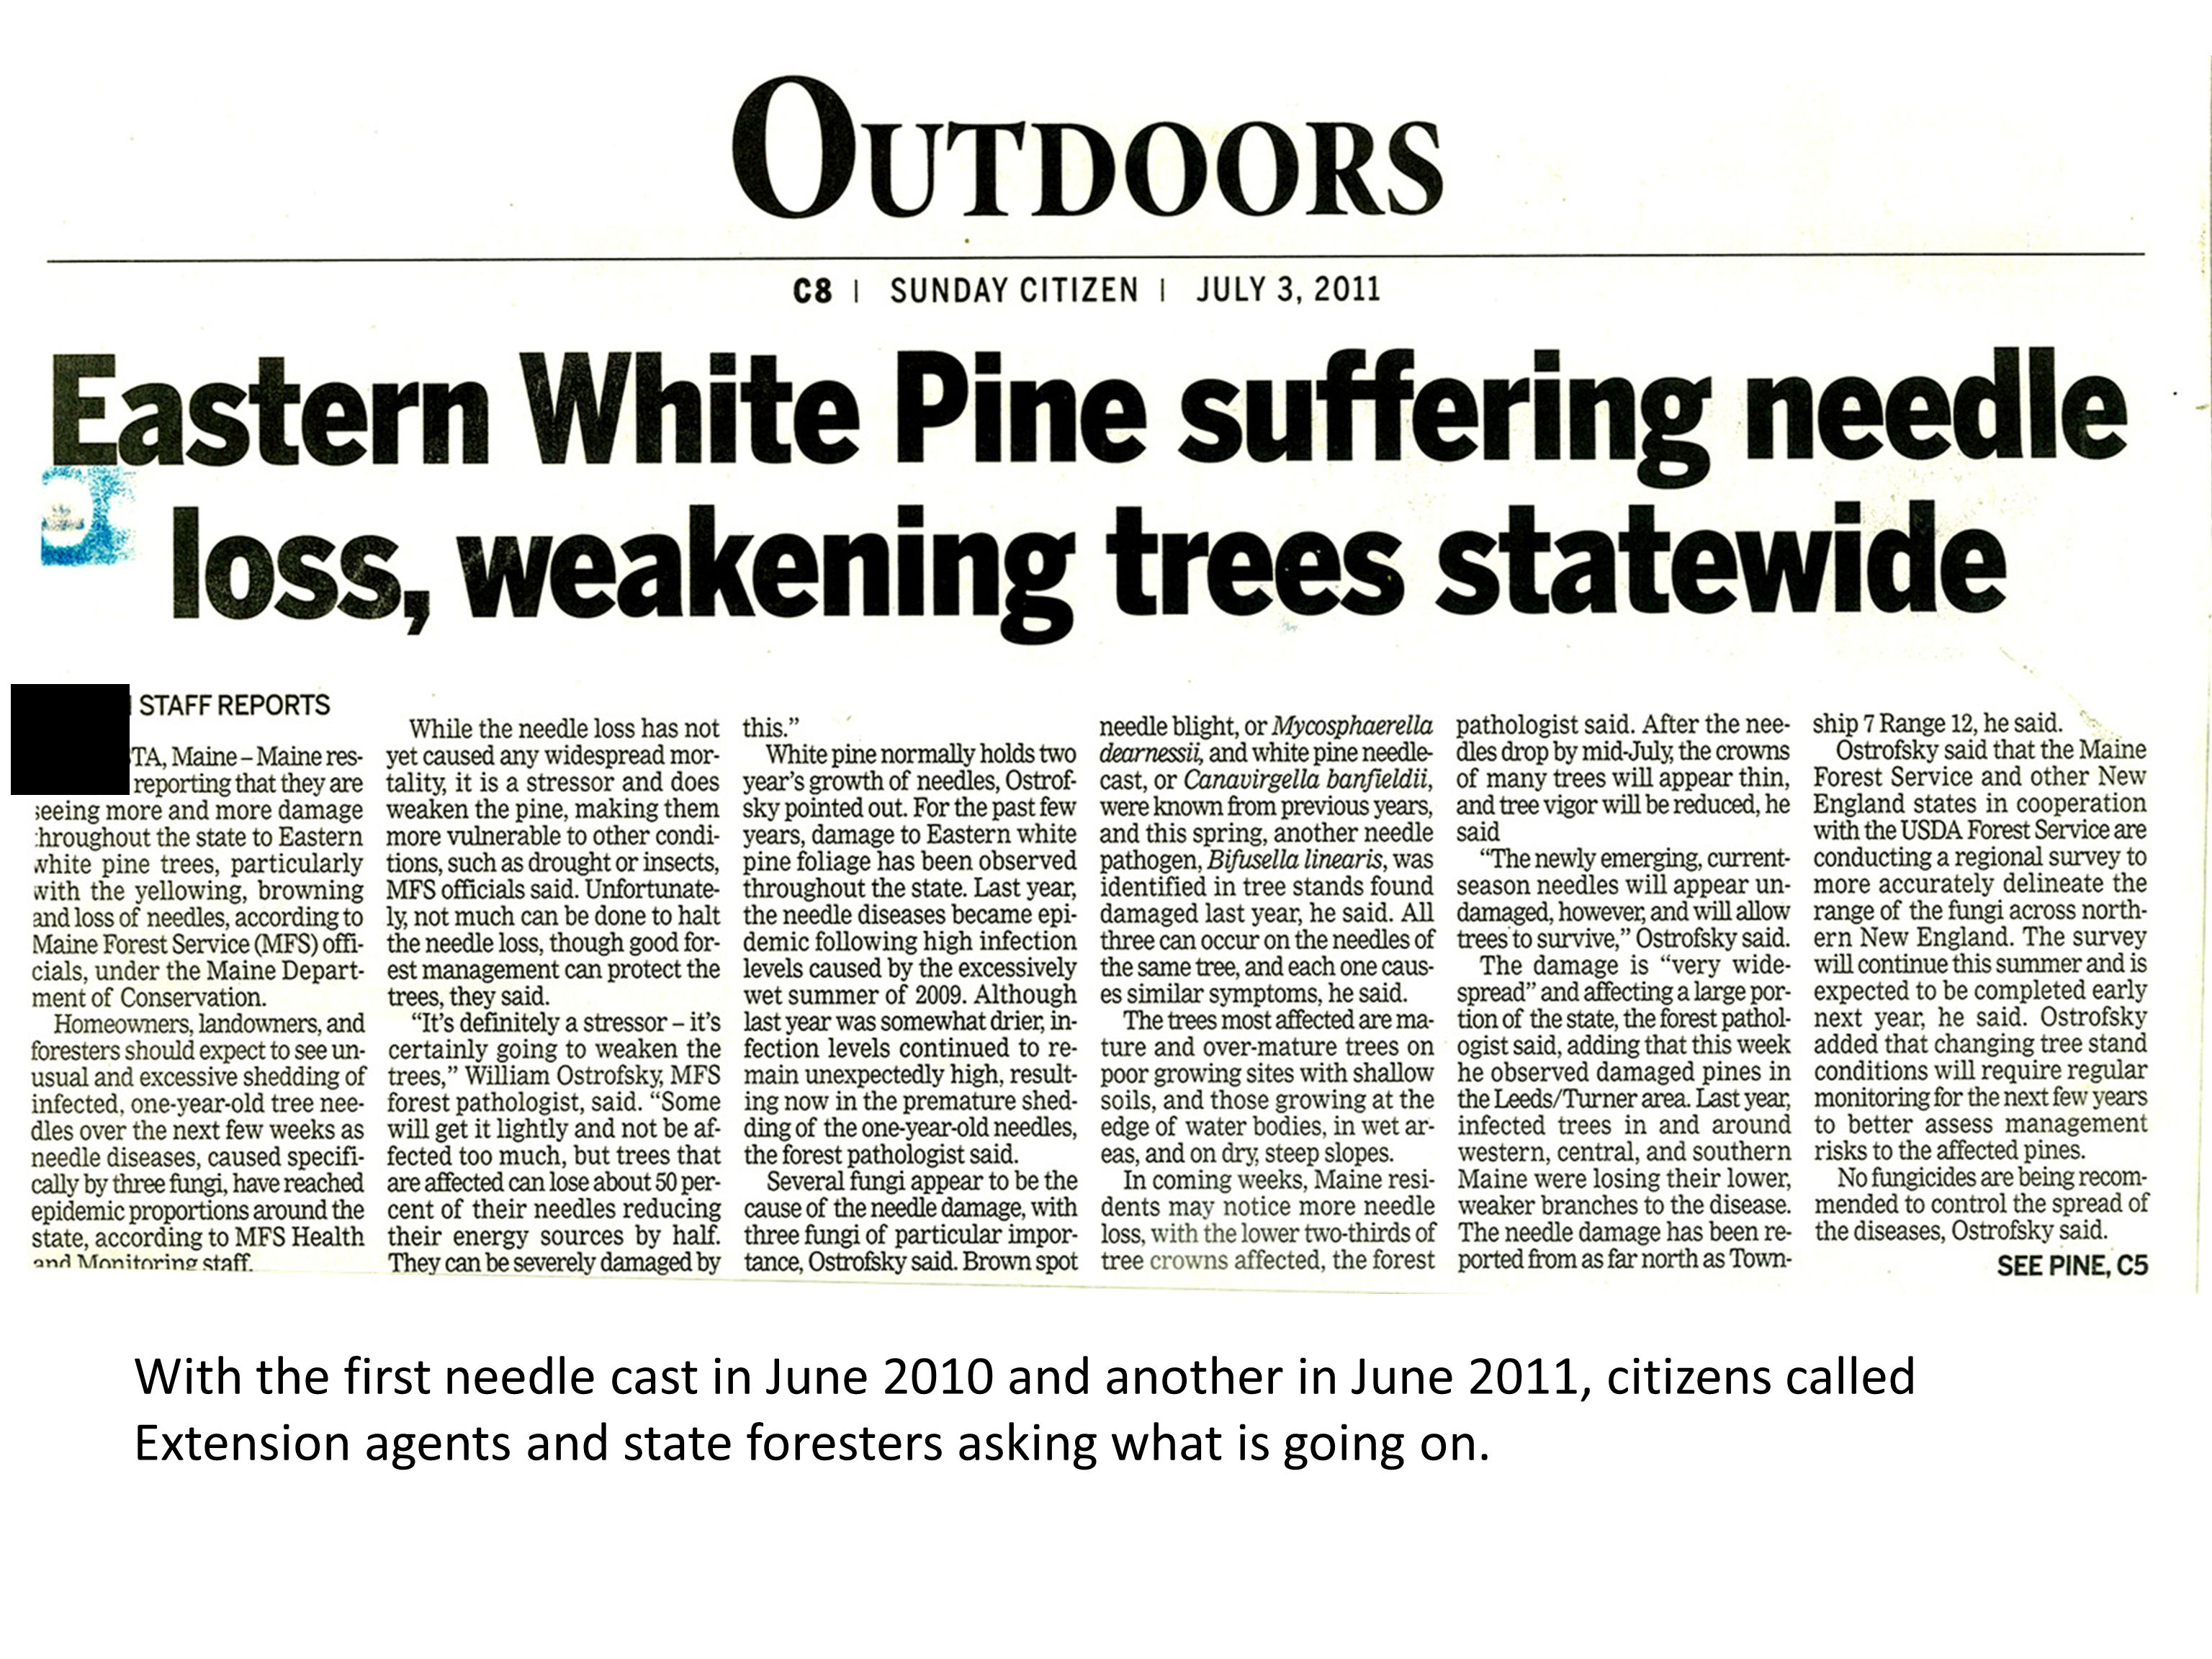 Even in 2010, Extension foresters and state pathologists identified fungi as a probable cause of heavy needle cast.